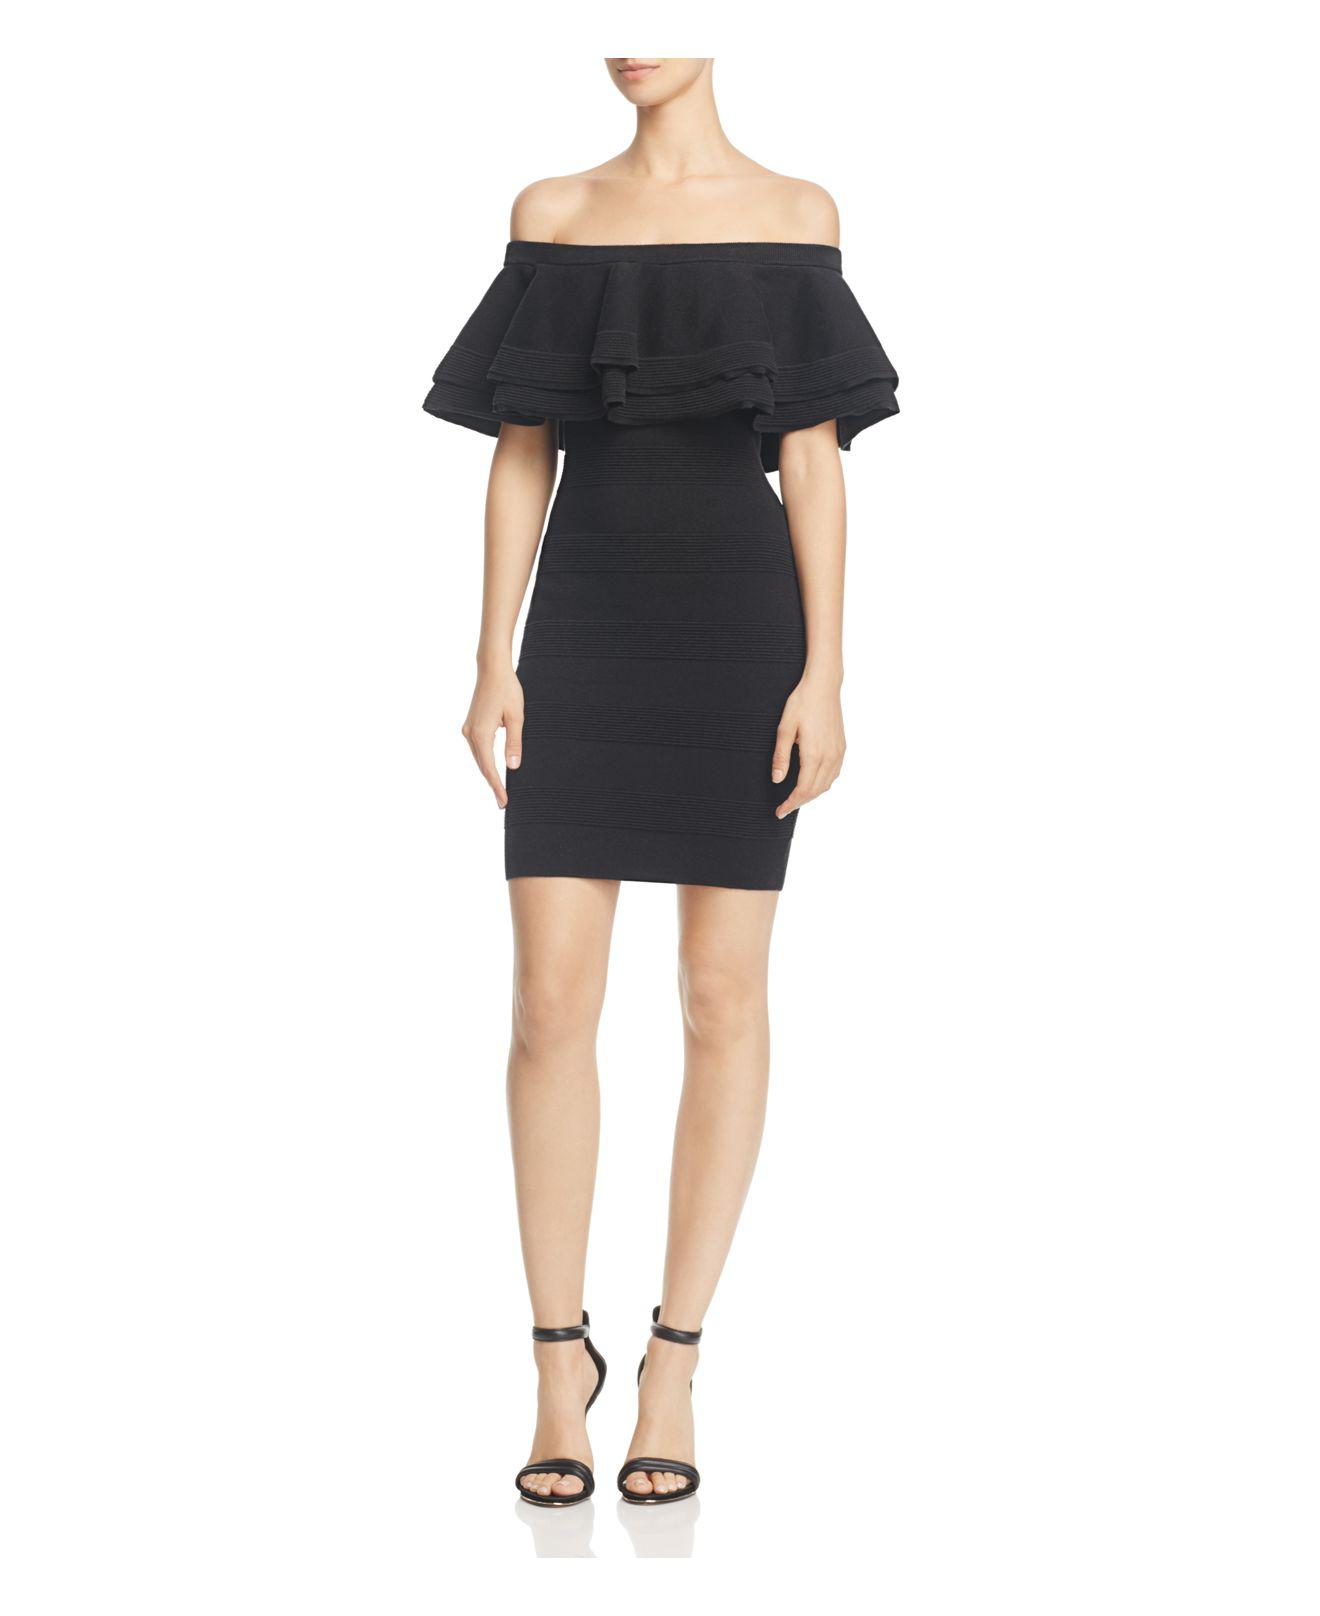 c6c552eb6516 Lyst - Endless Rose Tiered Ruffle Off-the-shoulder Dress in Black